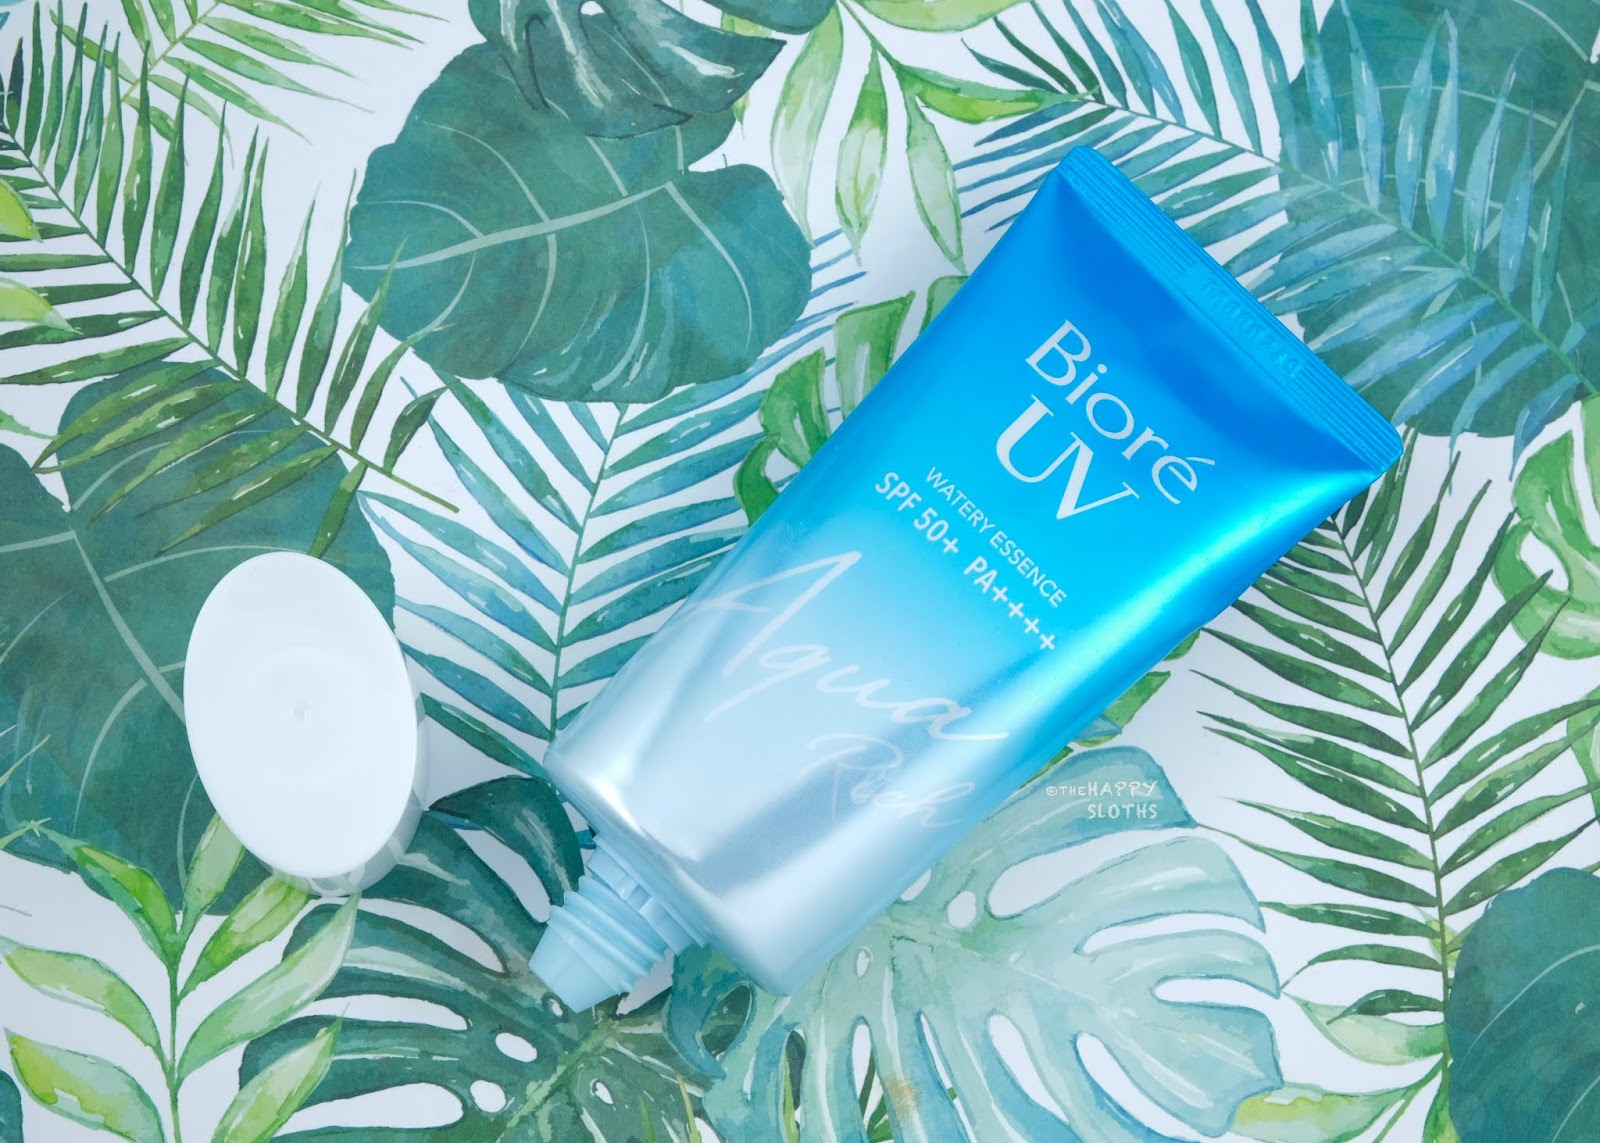 Biore | UV Aqua Rich Watery Essence SPF 50+ Sunscreen: Review